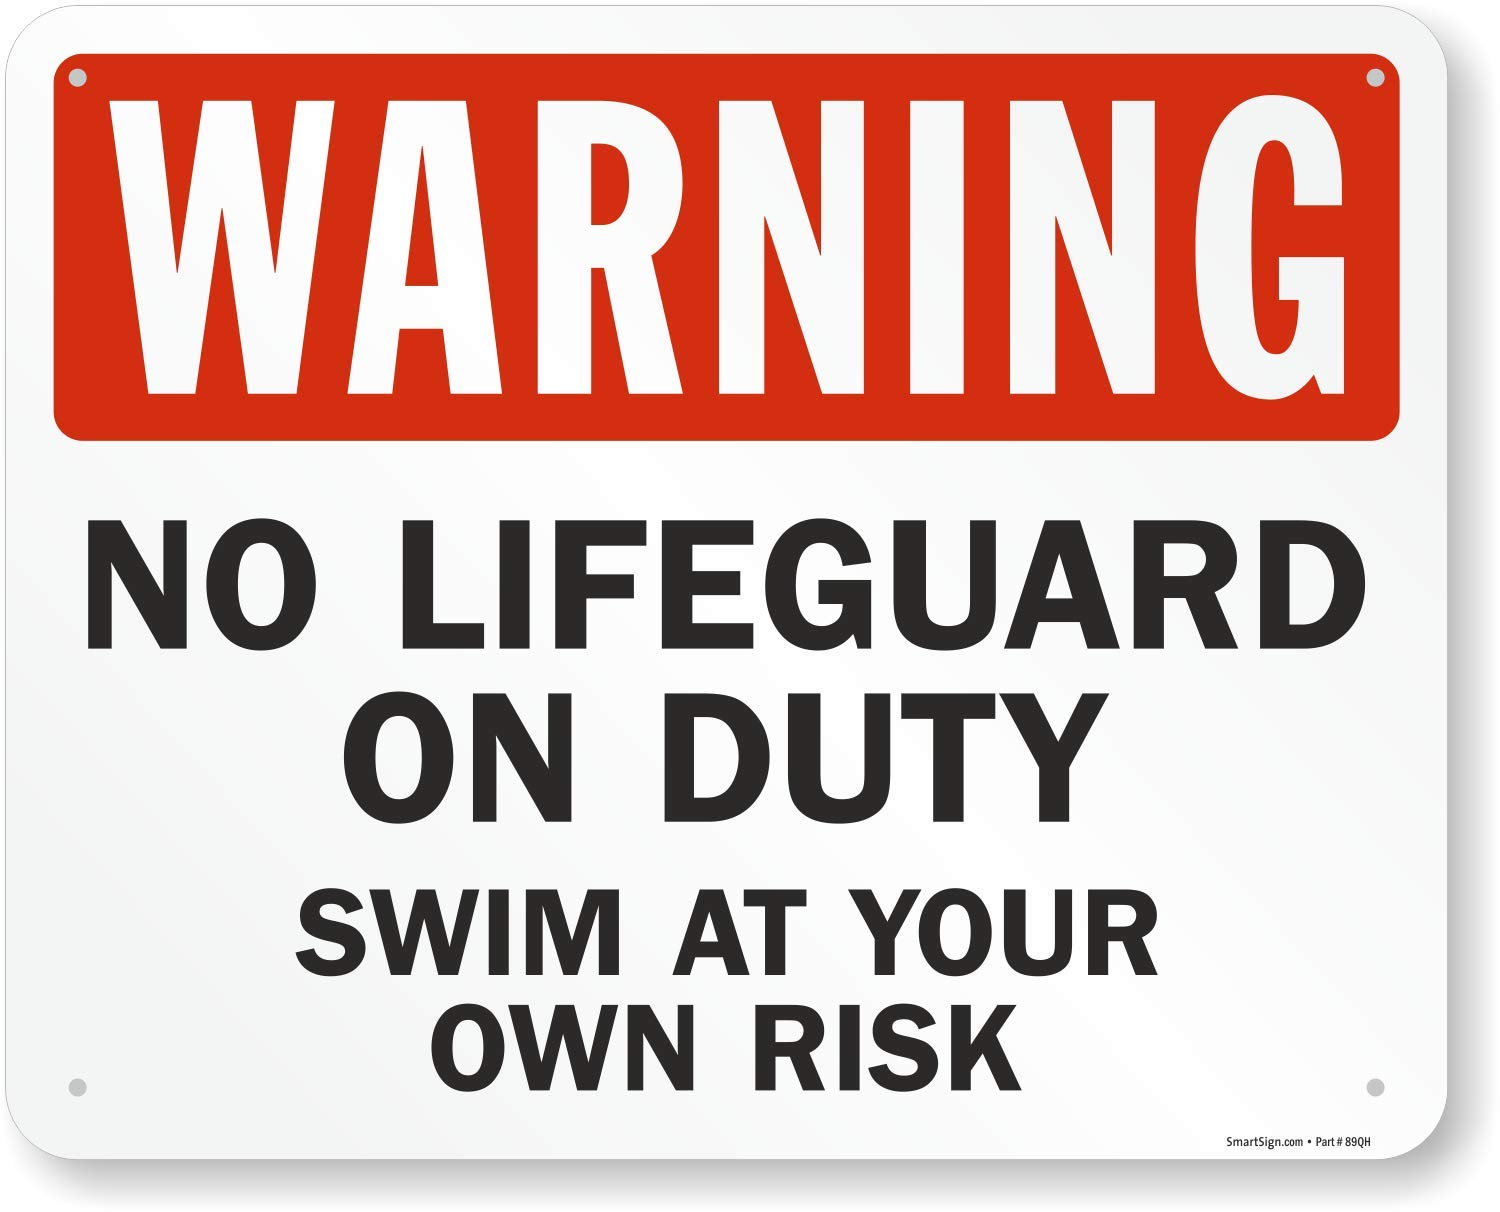 Warning, No Lifeguard On Duty Swim At Your Own Risk Sign, 30'' x 24'' by SmartSign